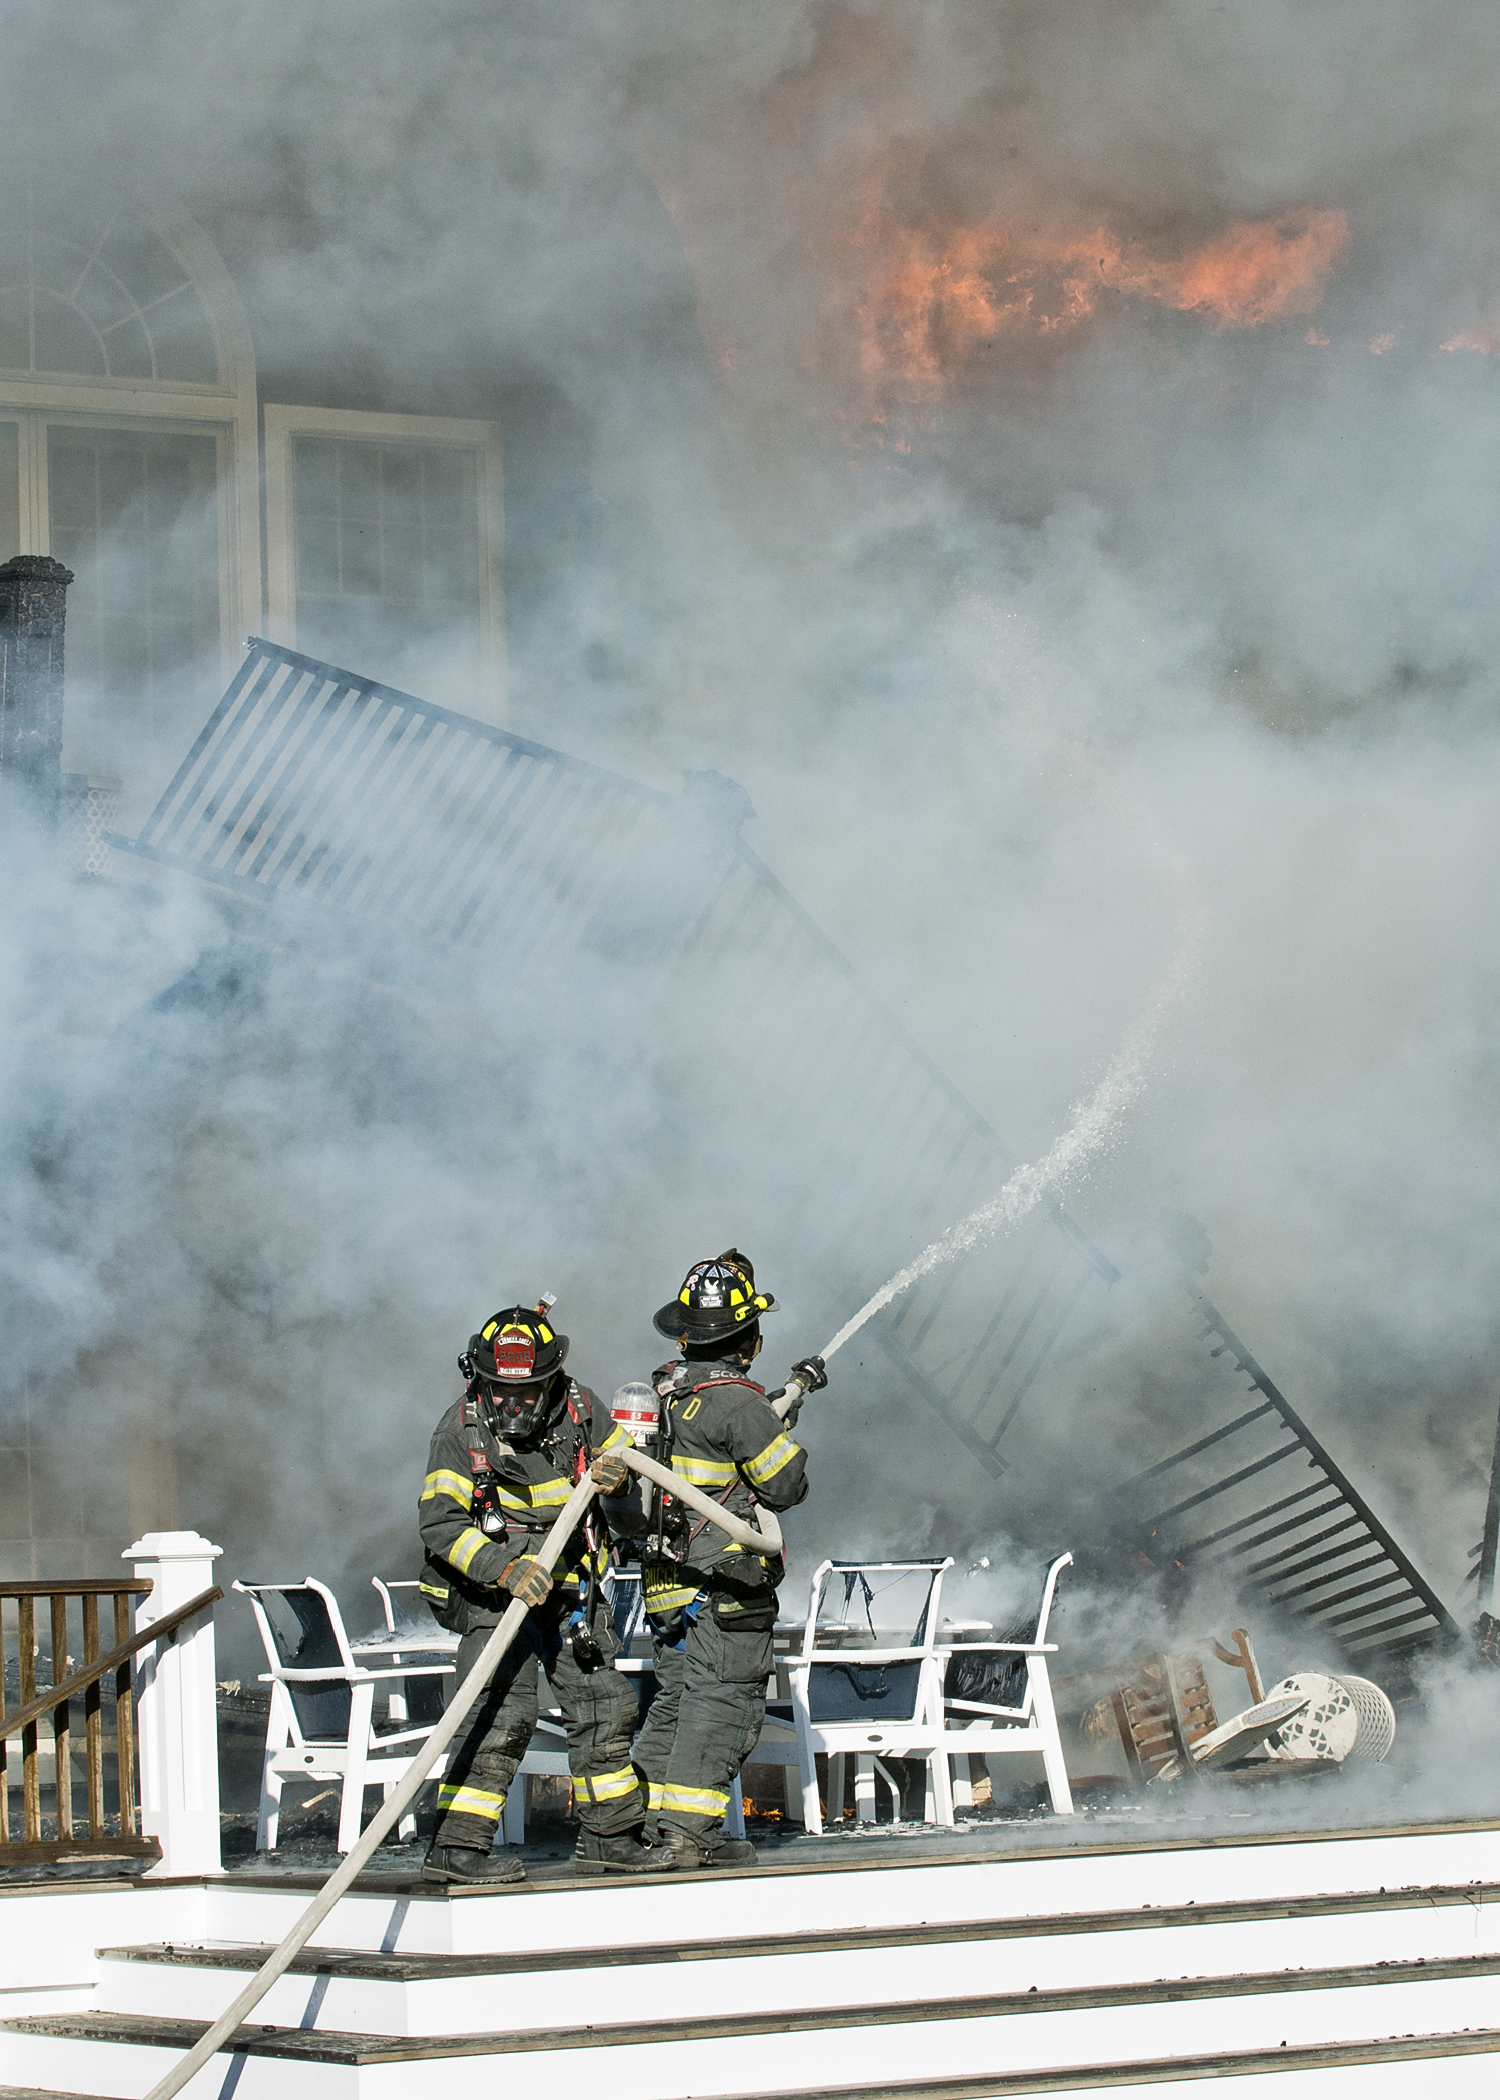 Firefighters atttacking the flames at a home on Michaels Way in Westhampton Beach yesterday afternoon.